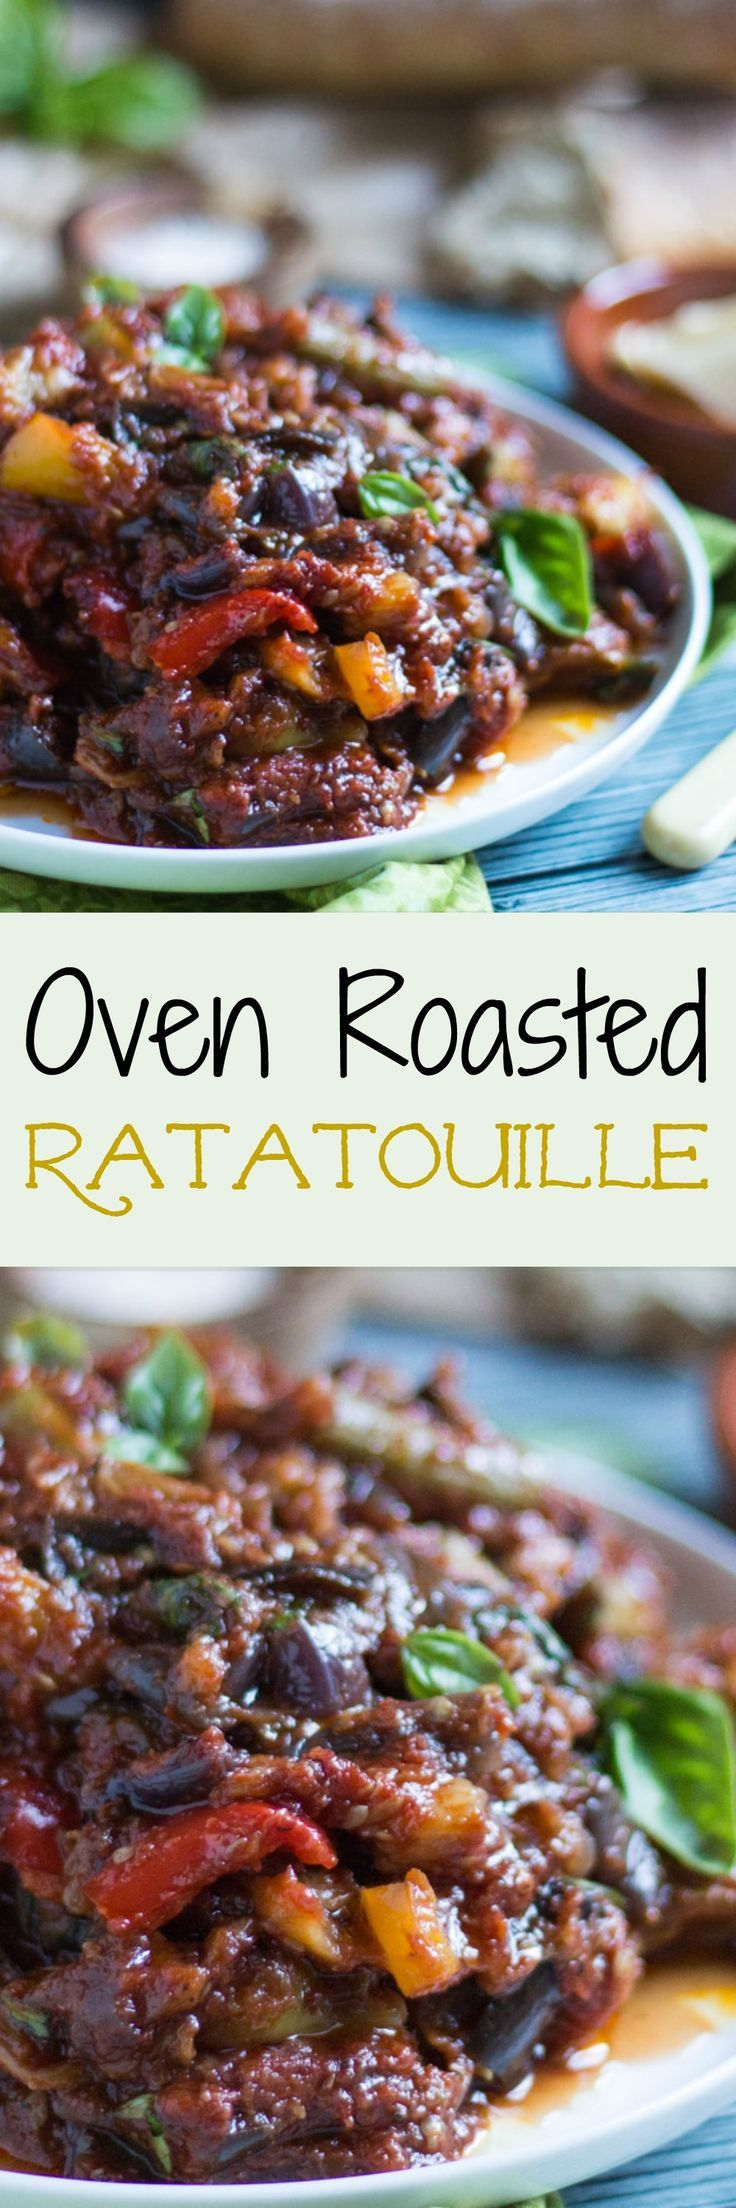 Healthy   Roasted   Gluten Free   Easy   Vegan   Fantastic hot or cold, and freezes well.